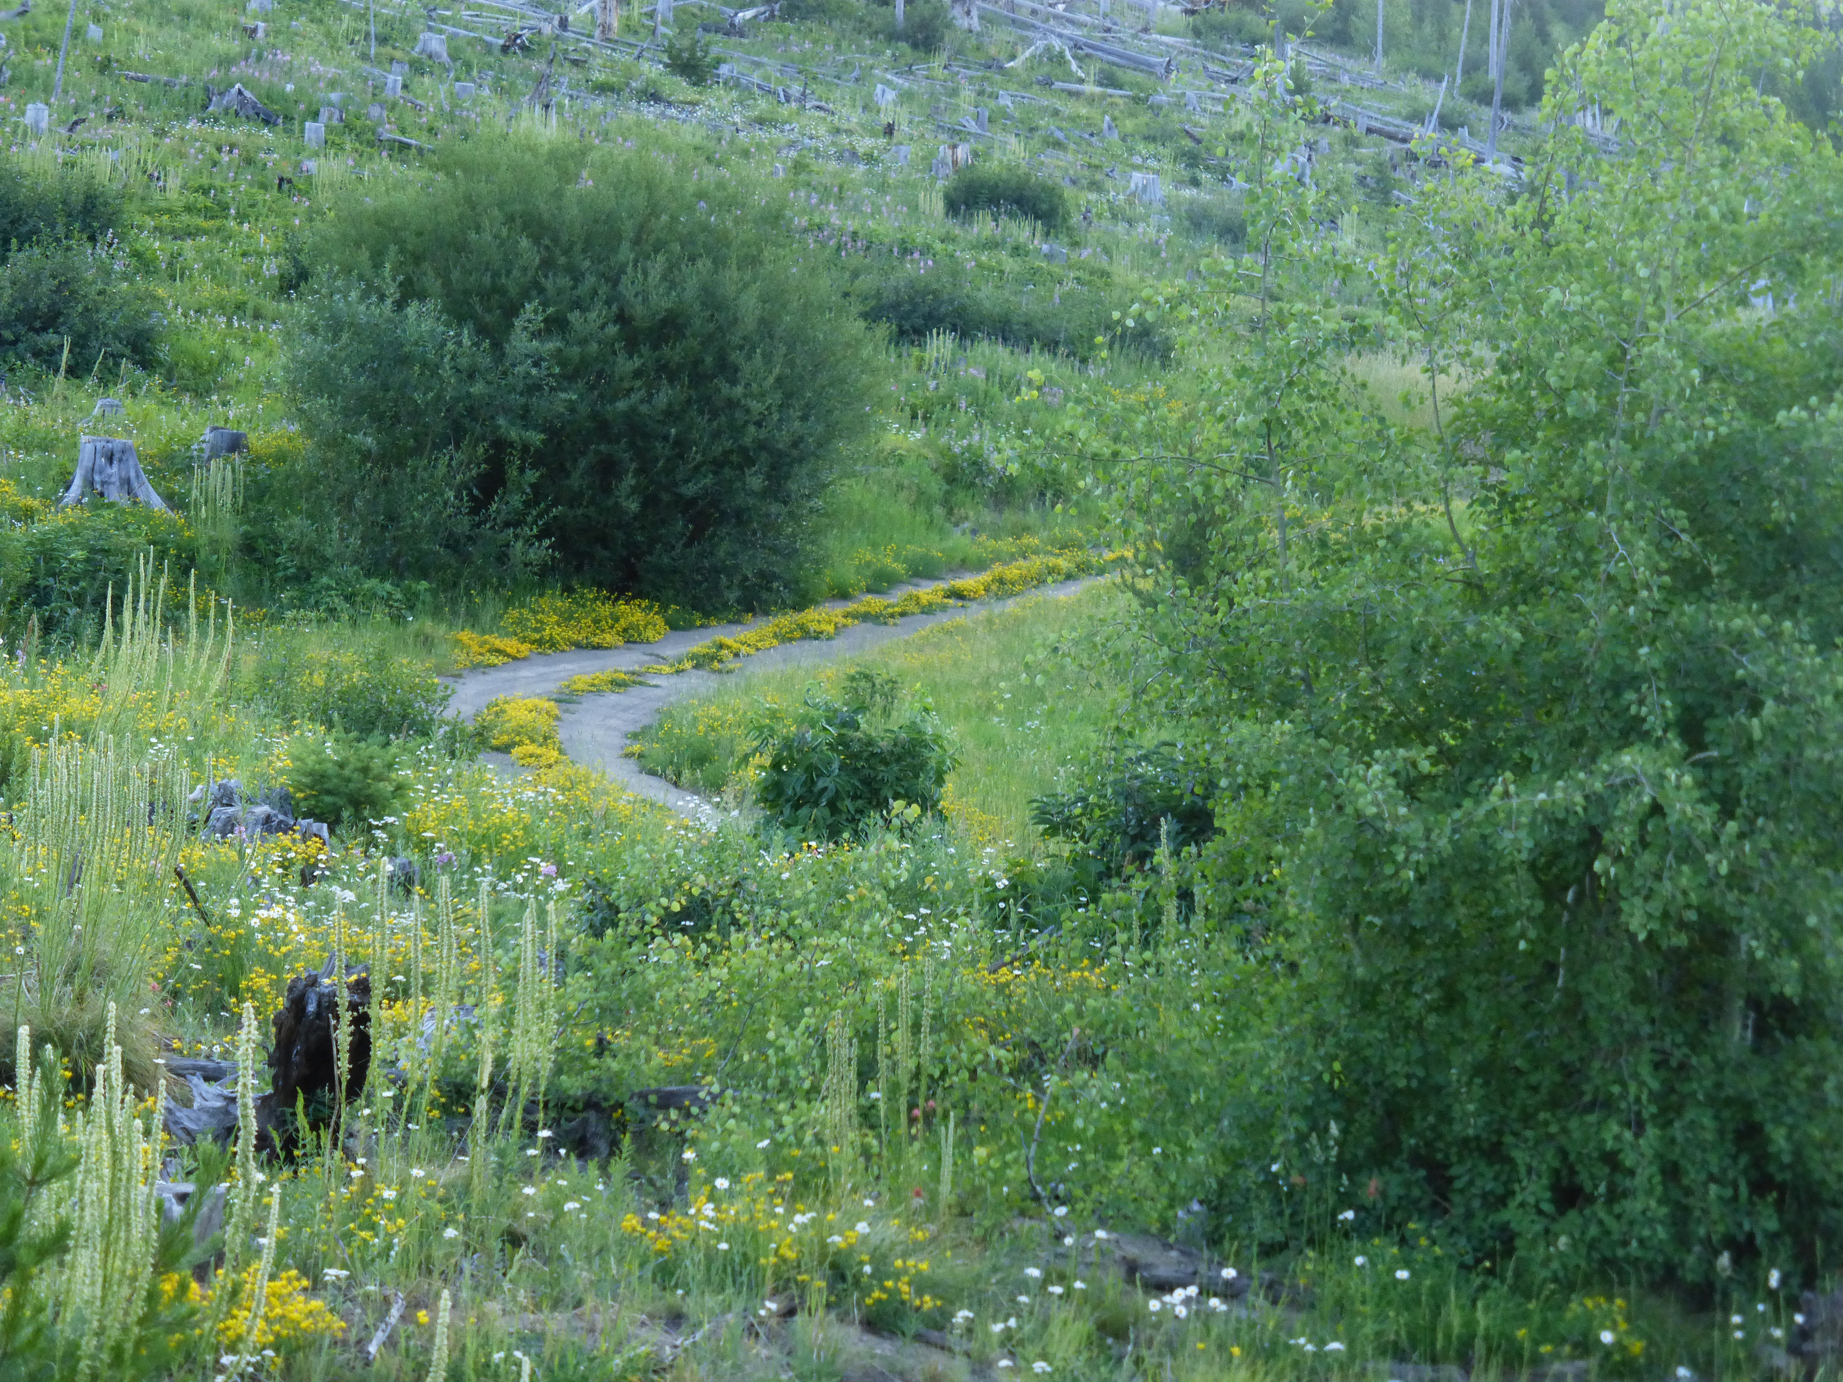 Driving to the trailhead with wildflowers